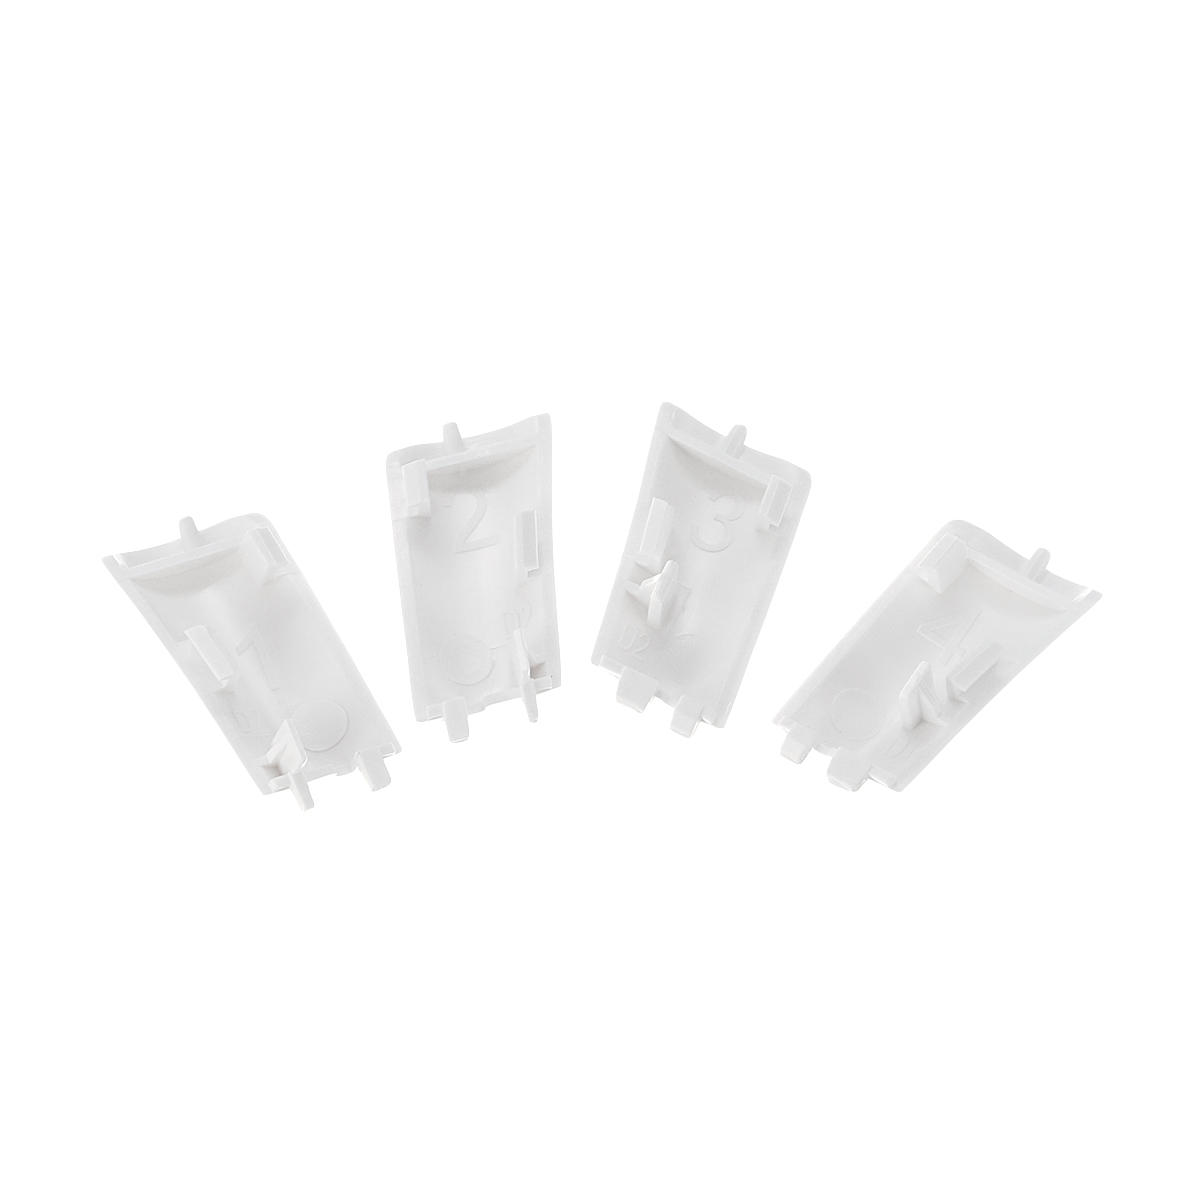 4Pcs Landing Gear Cover RC Quadcopter Parts For DJI Phantom 4 Pro/Adv Drone